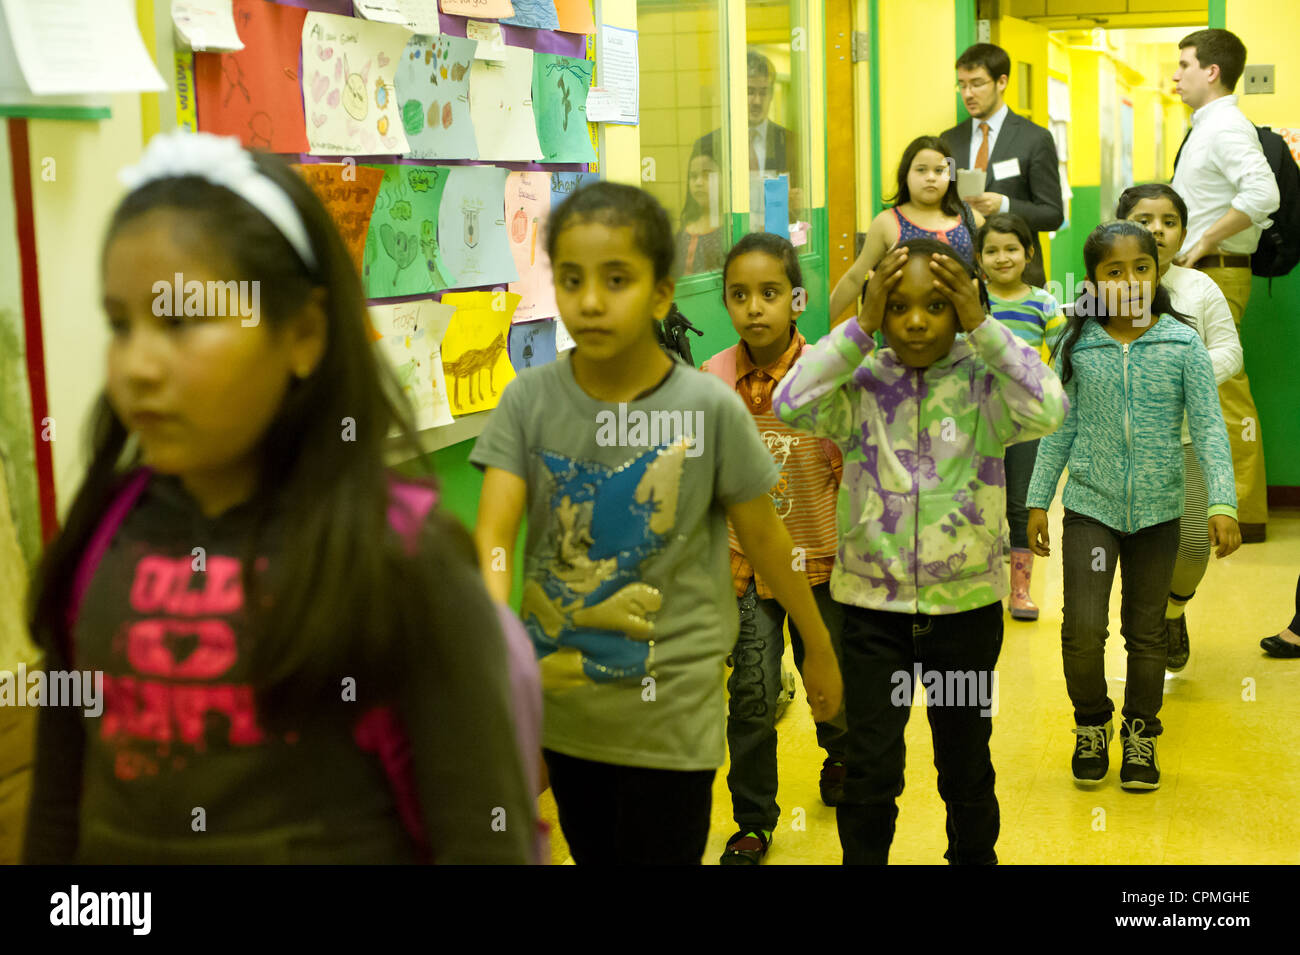 First and second graders leave the classroom after a class in Arabic in New York - Stock Image